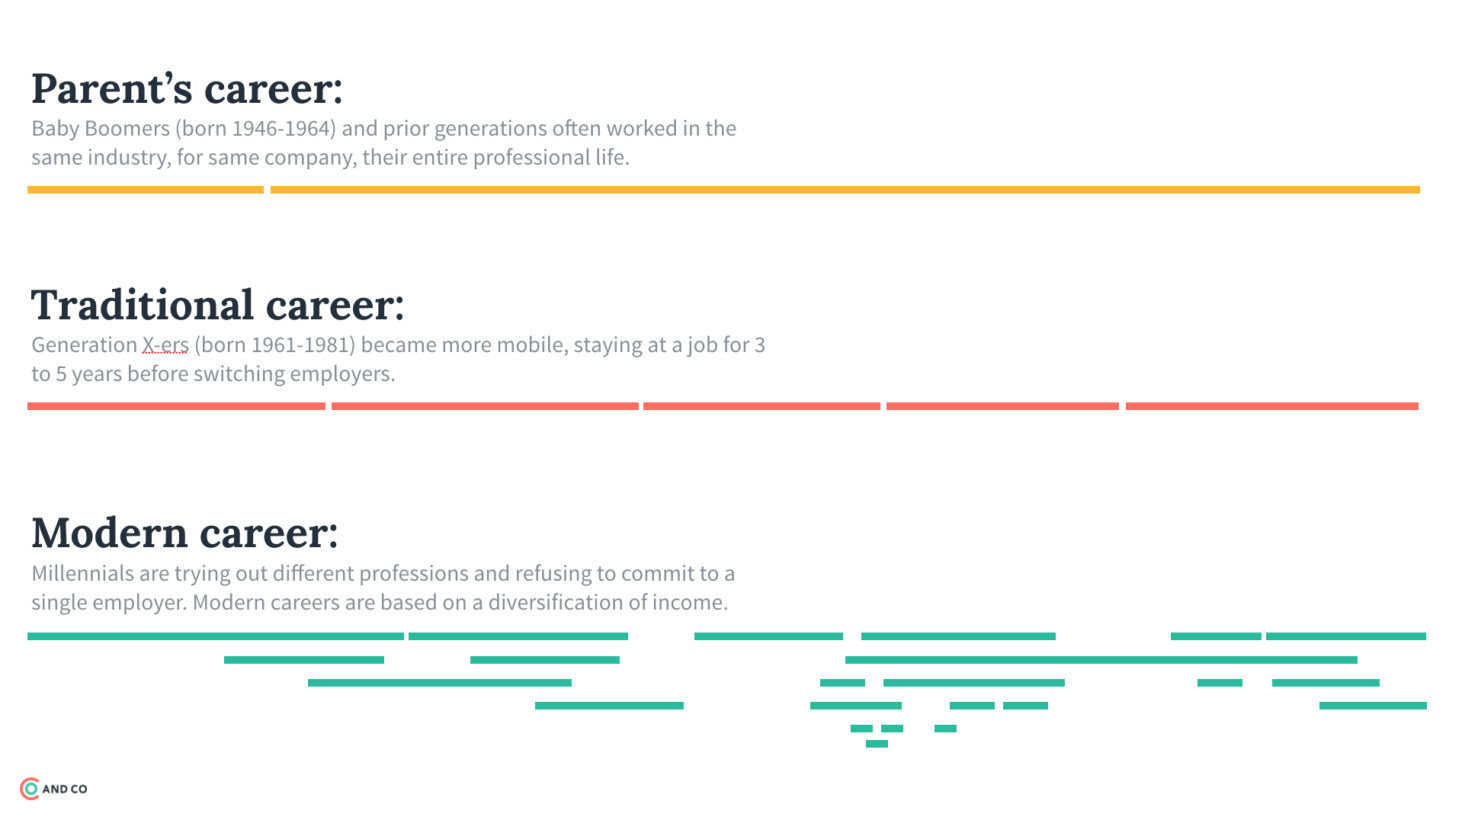 Graphic illustrating traditional and modern careers